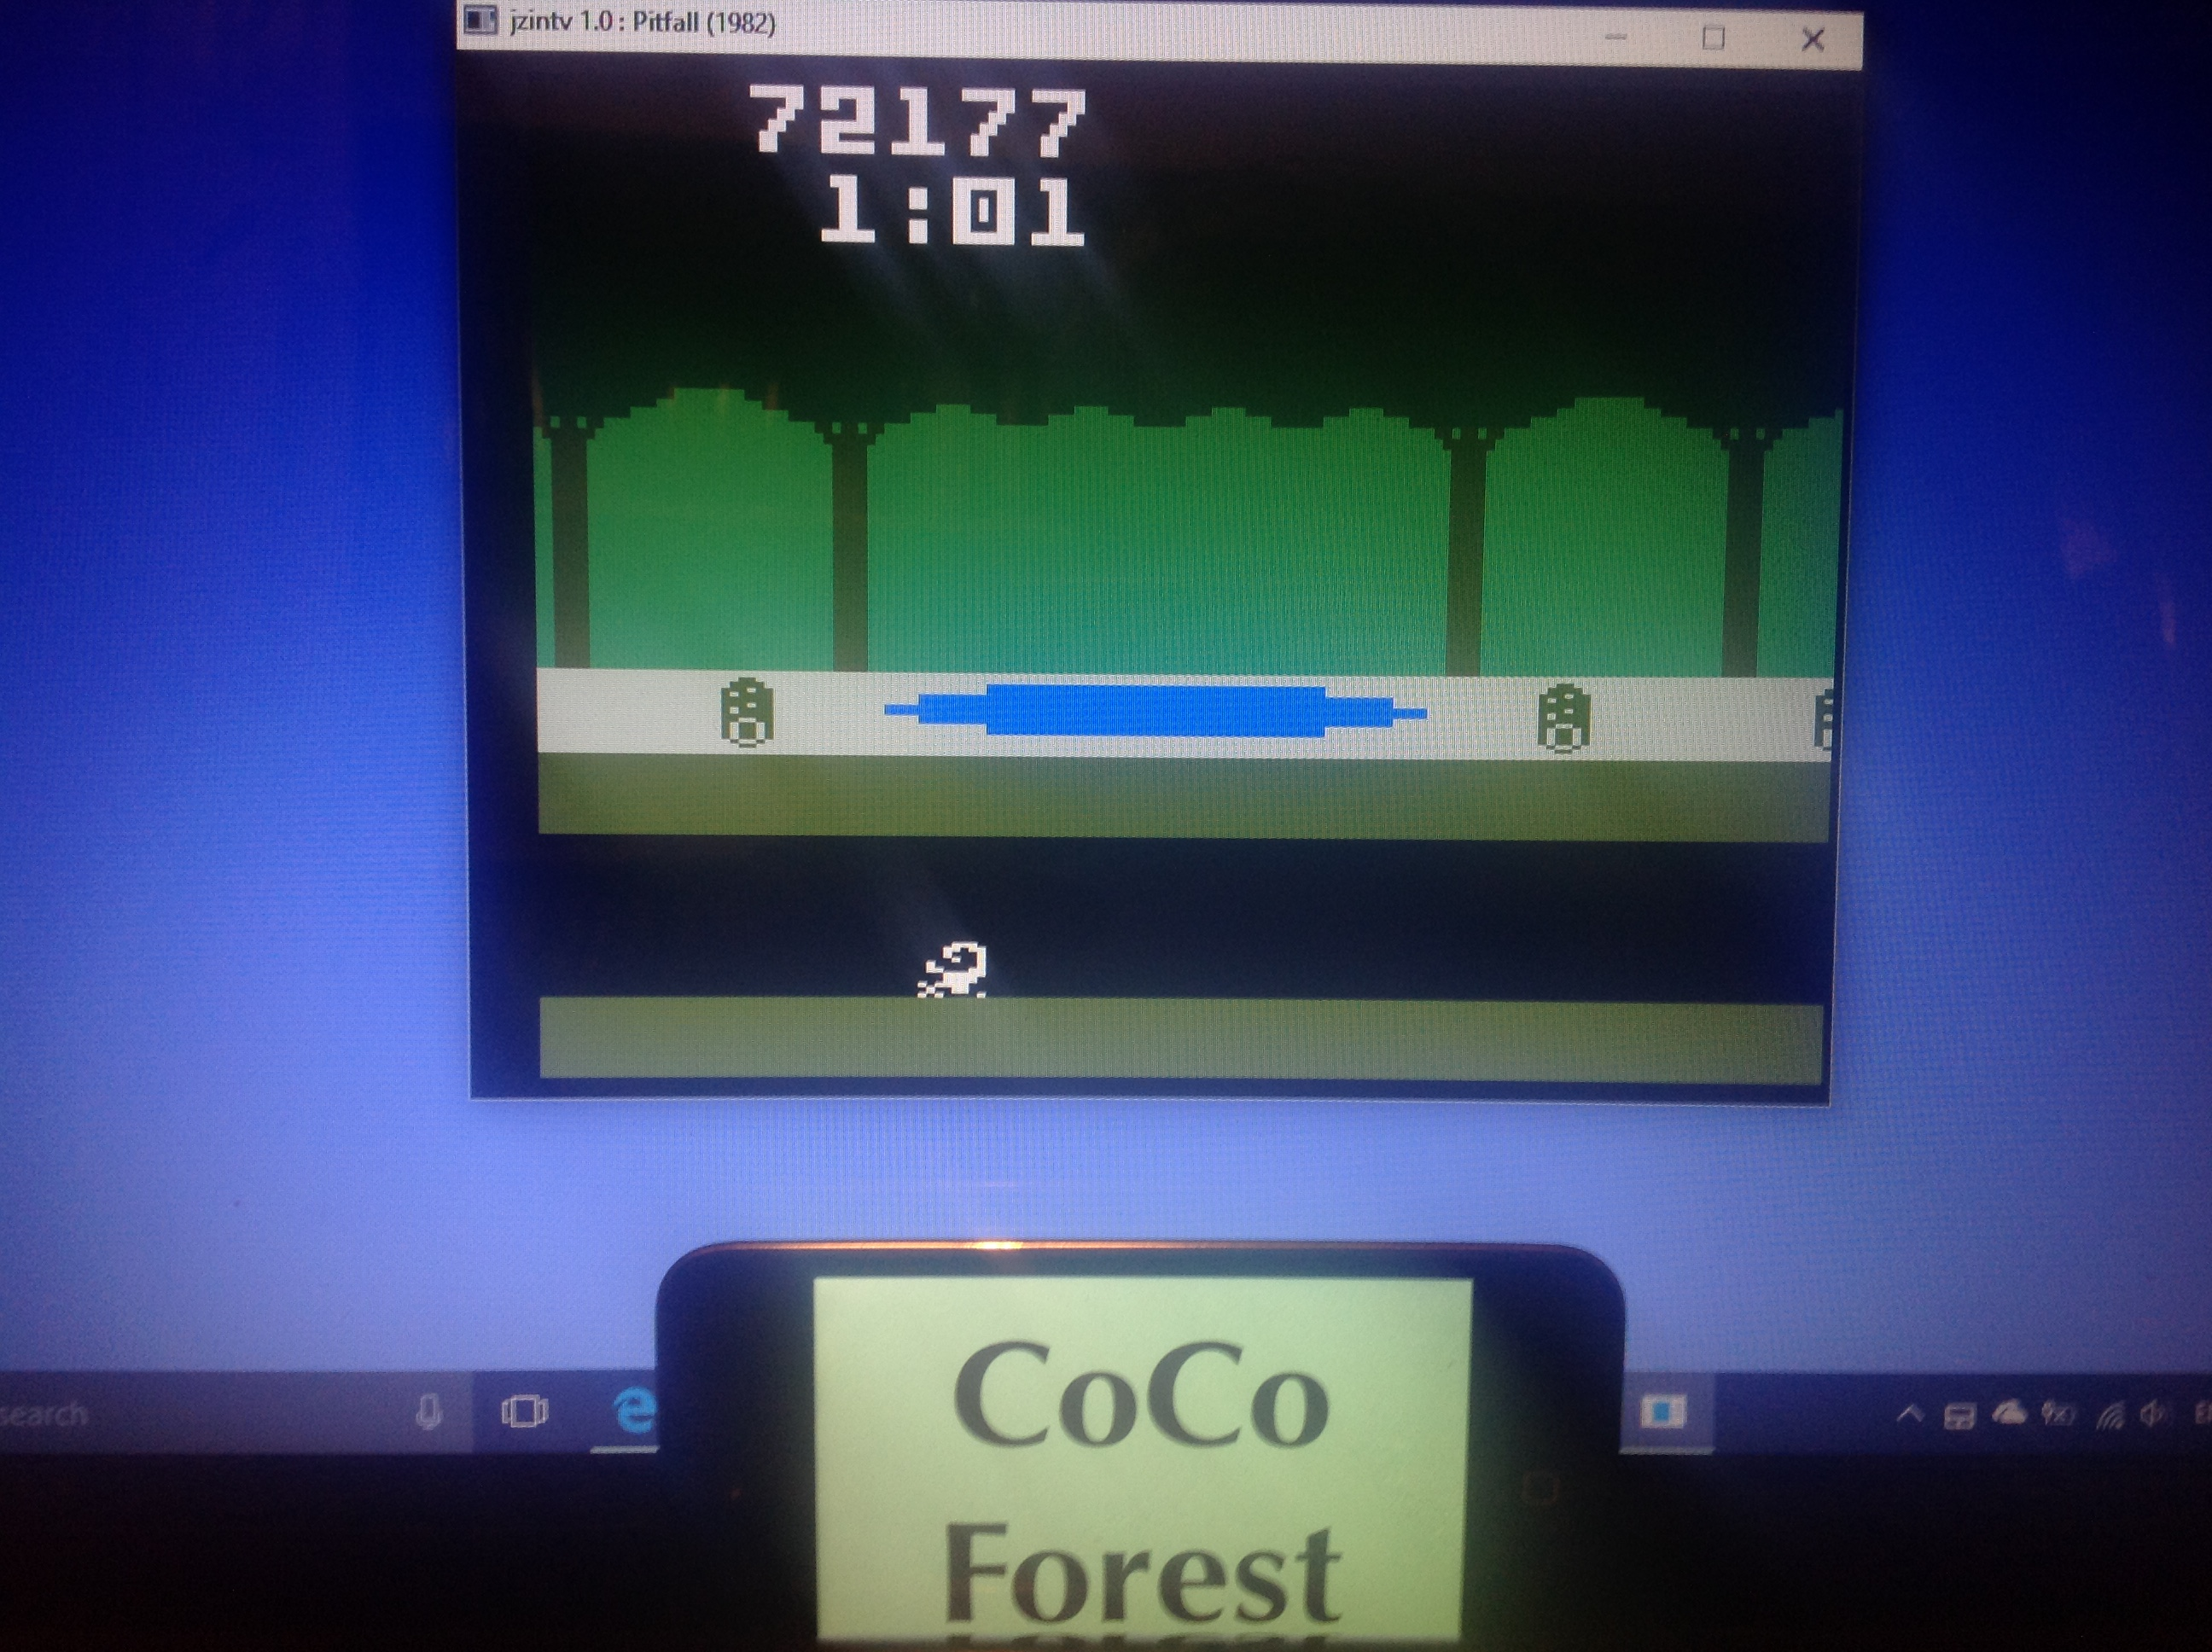 CoCoForest: Pitfall (Intellivision Emulated) 72,177 points on 2018-01-25 14:04:43